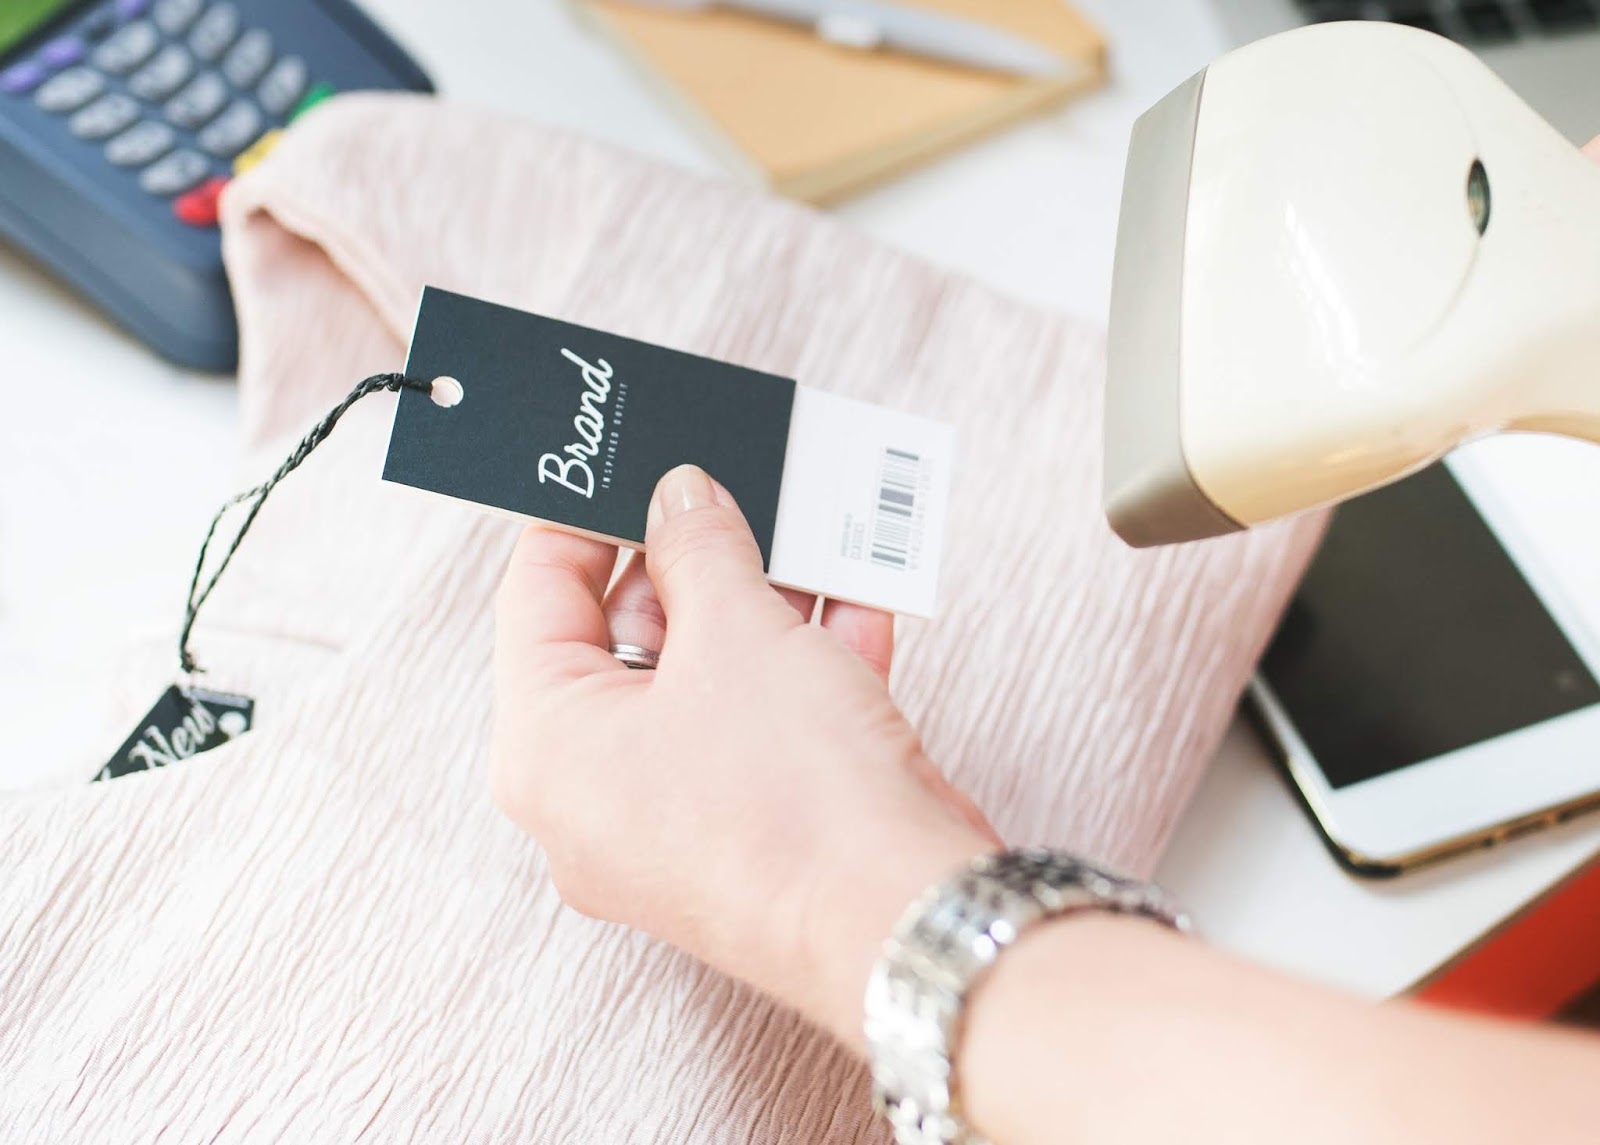 A cashier scanning a pink garment with a brand tag at a till